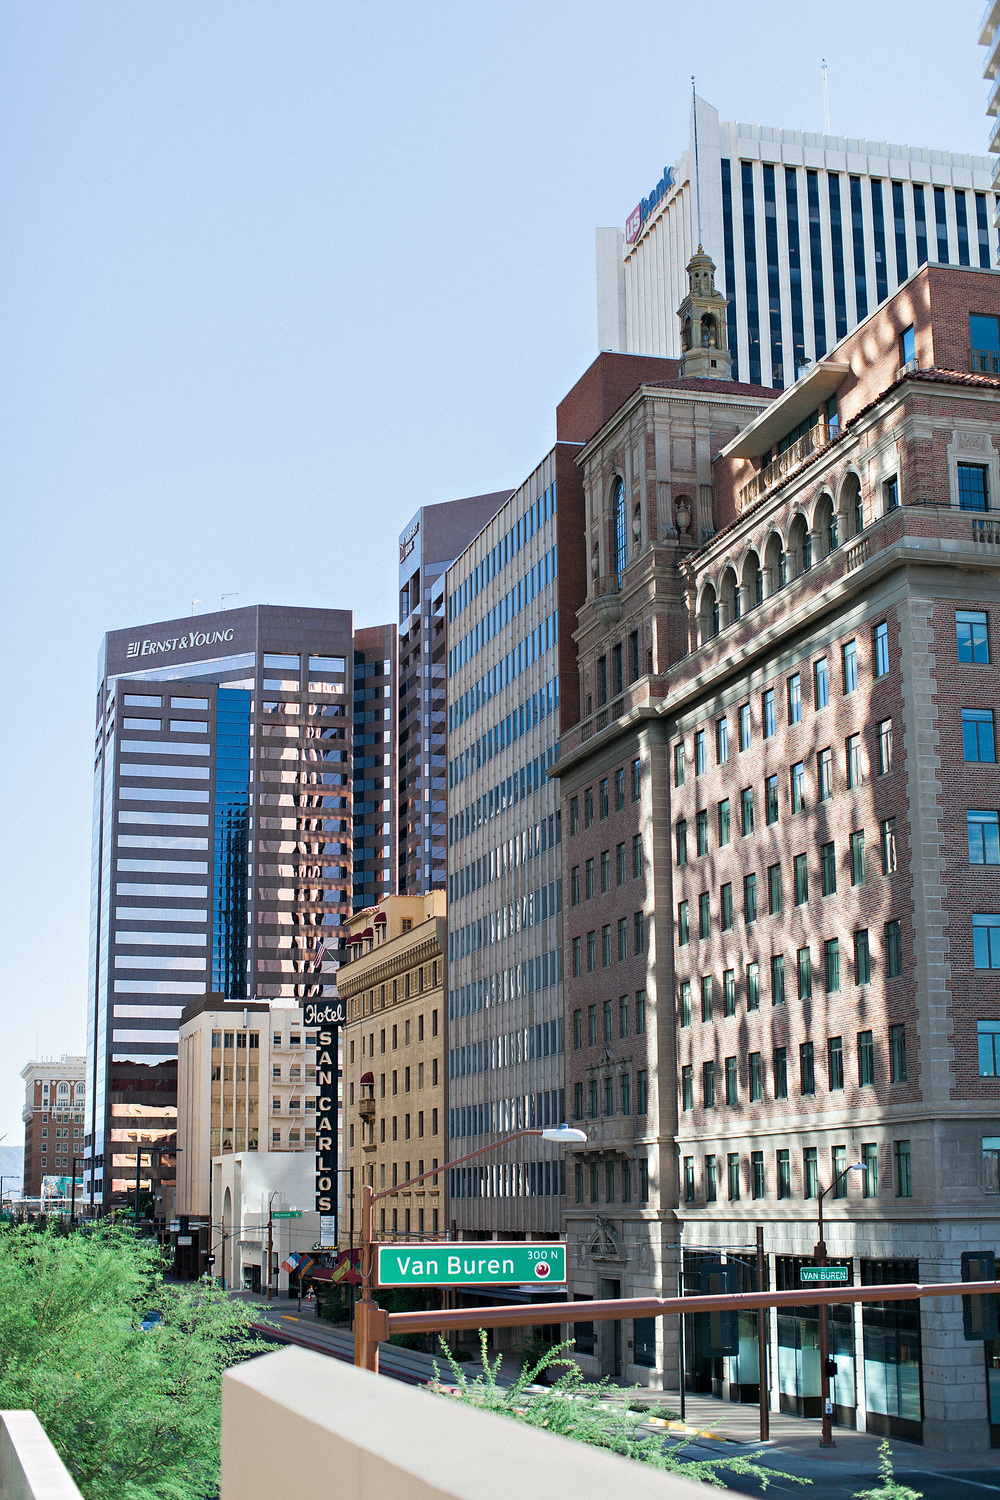 hesketh_0257.jpg